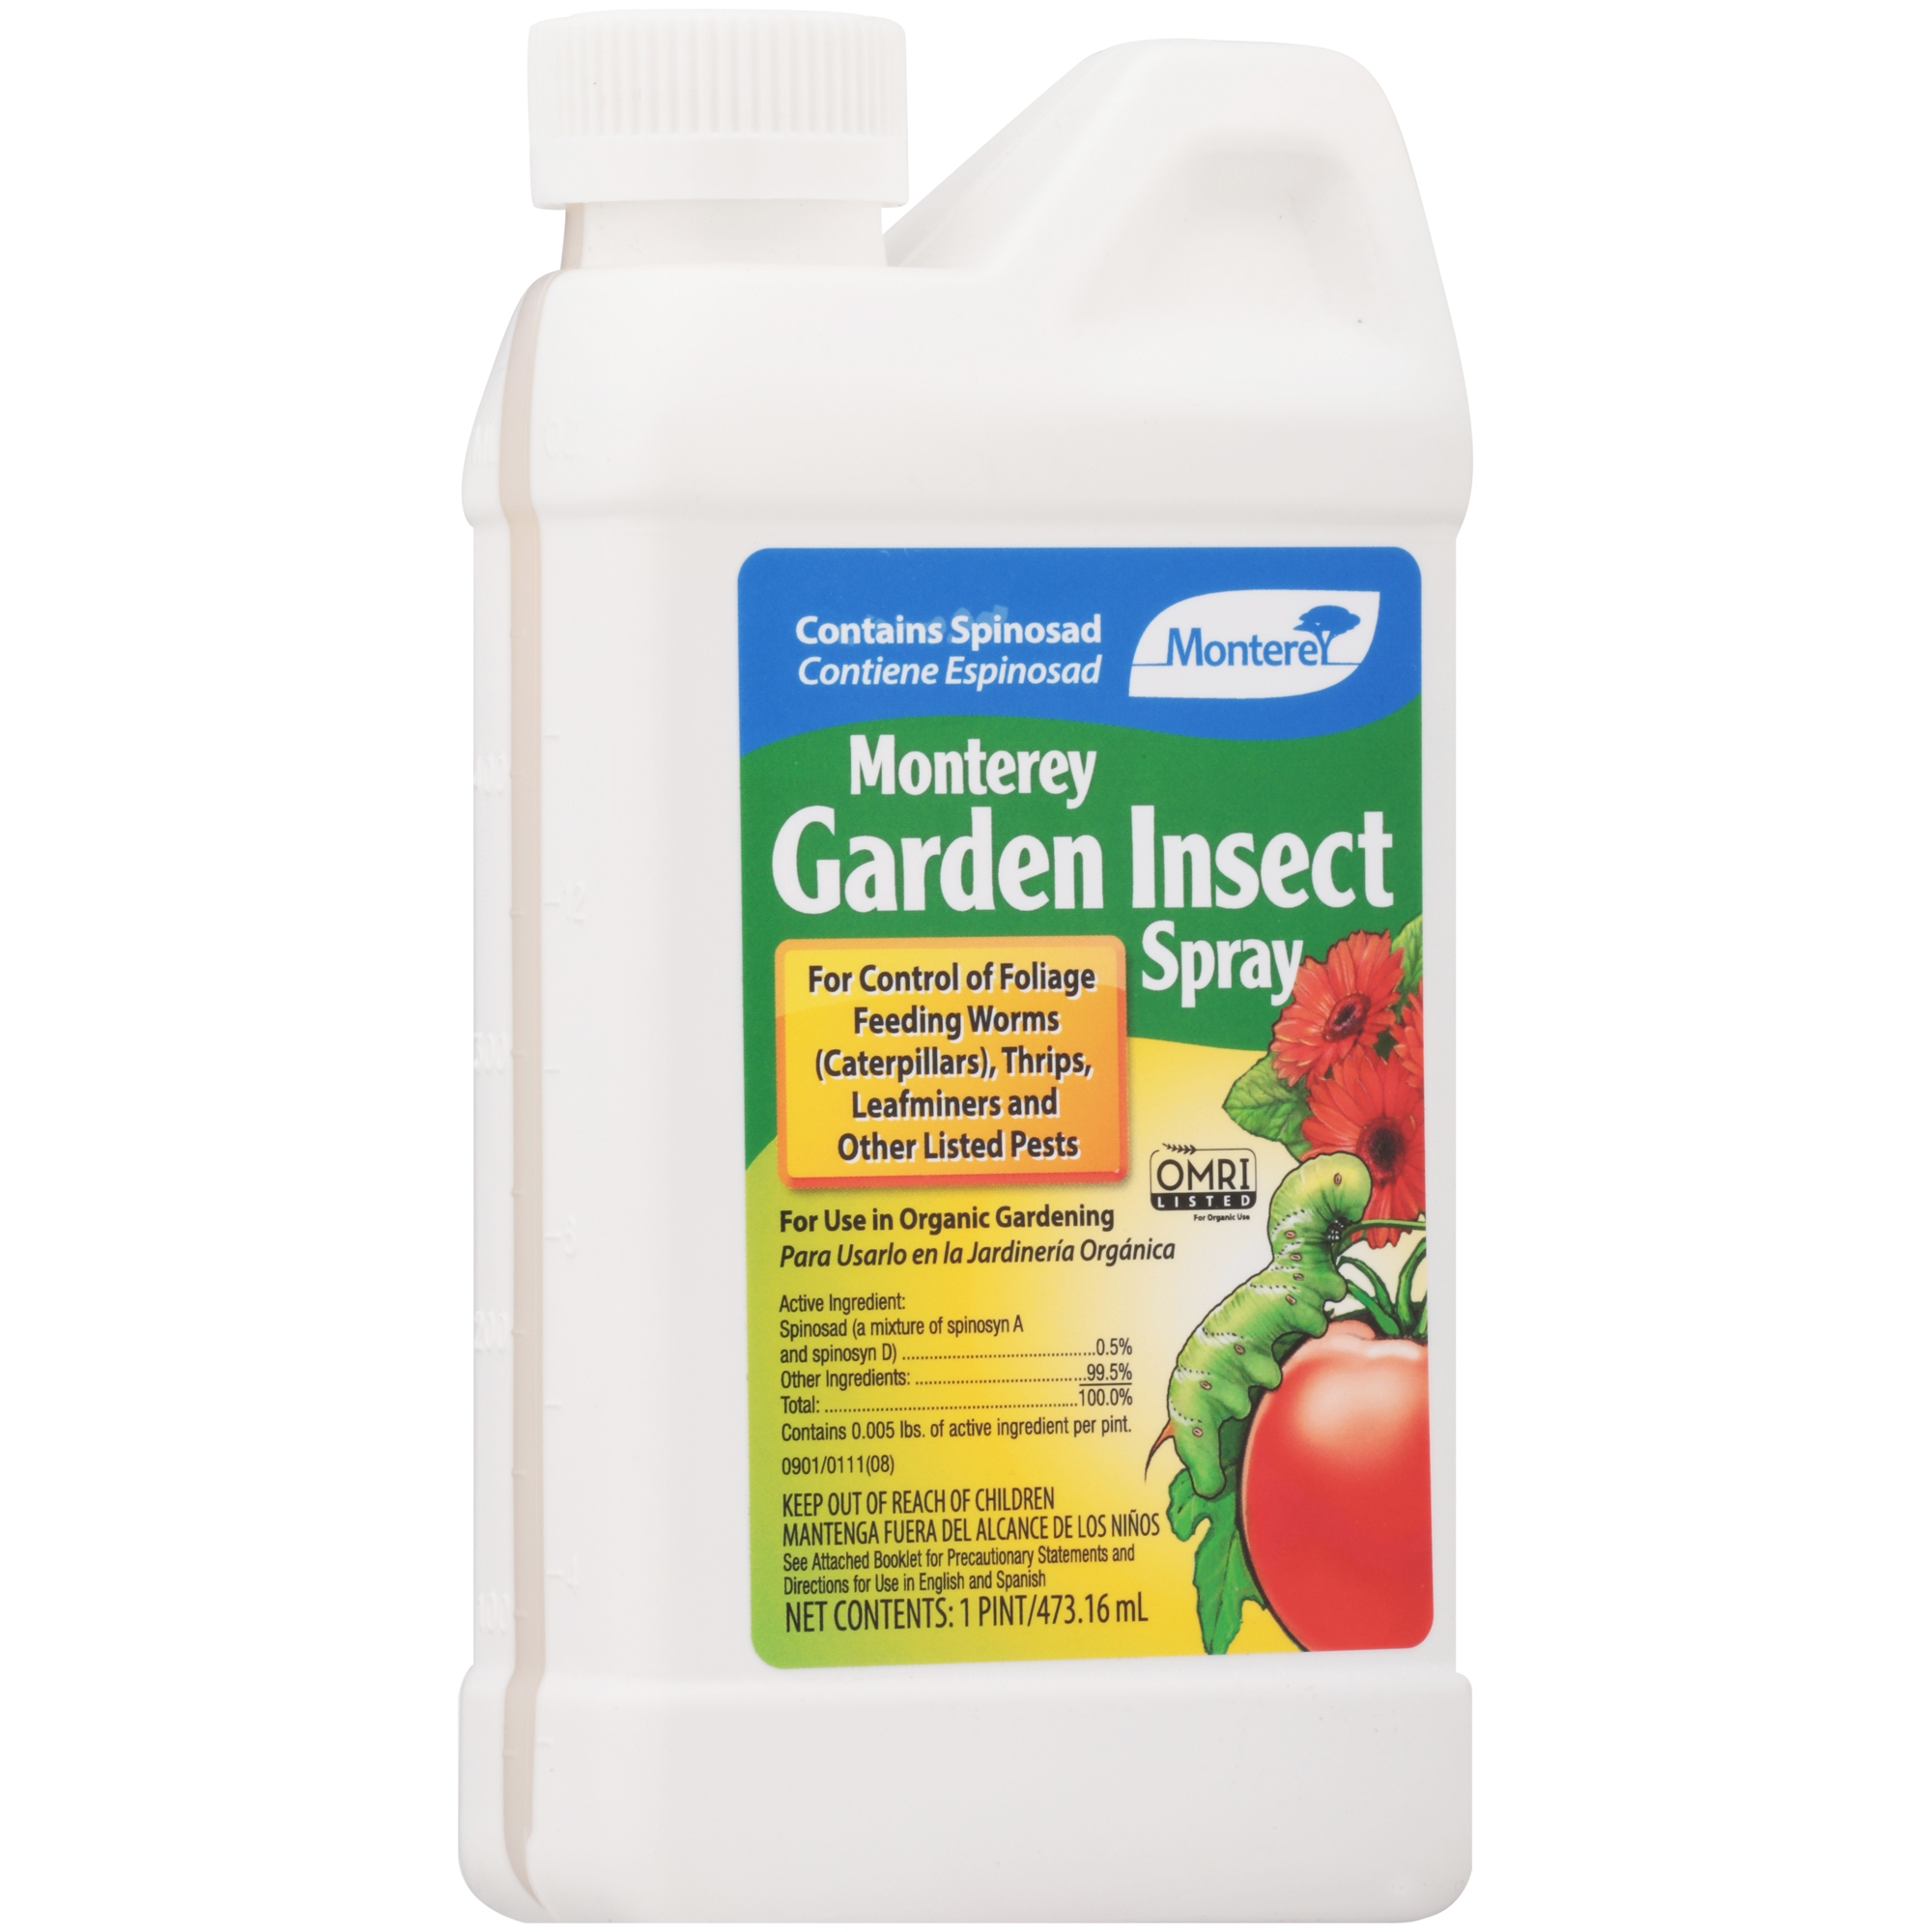 Monterey garden insect spray how to use garden ftempo for Better homes and gardens furniture customer service phone number